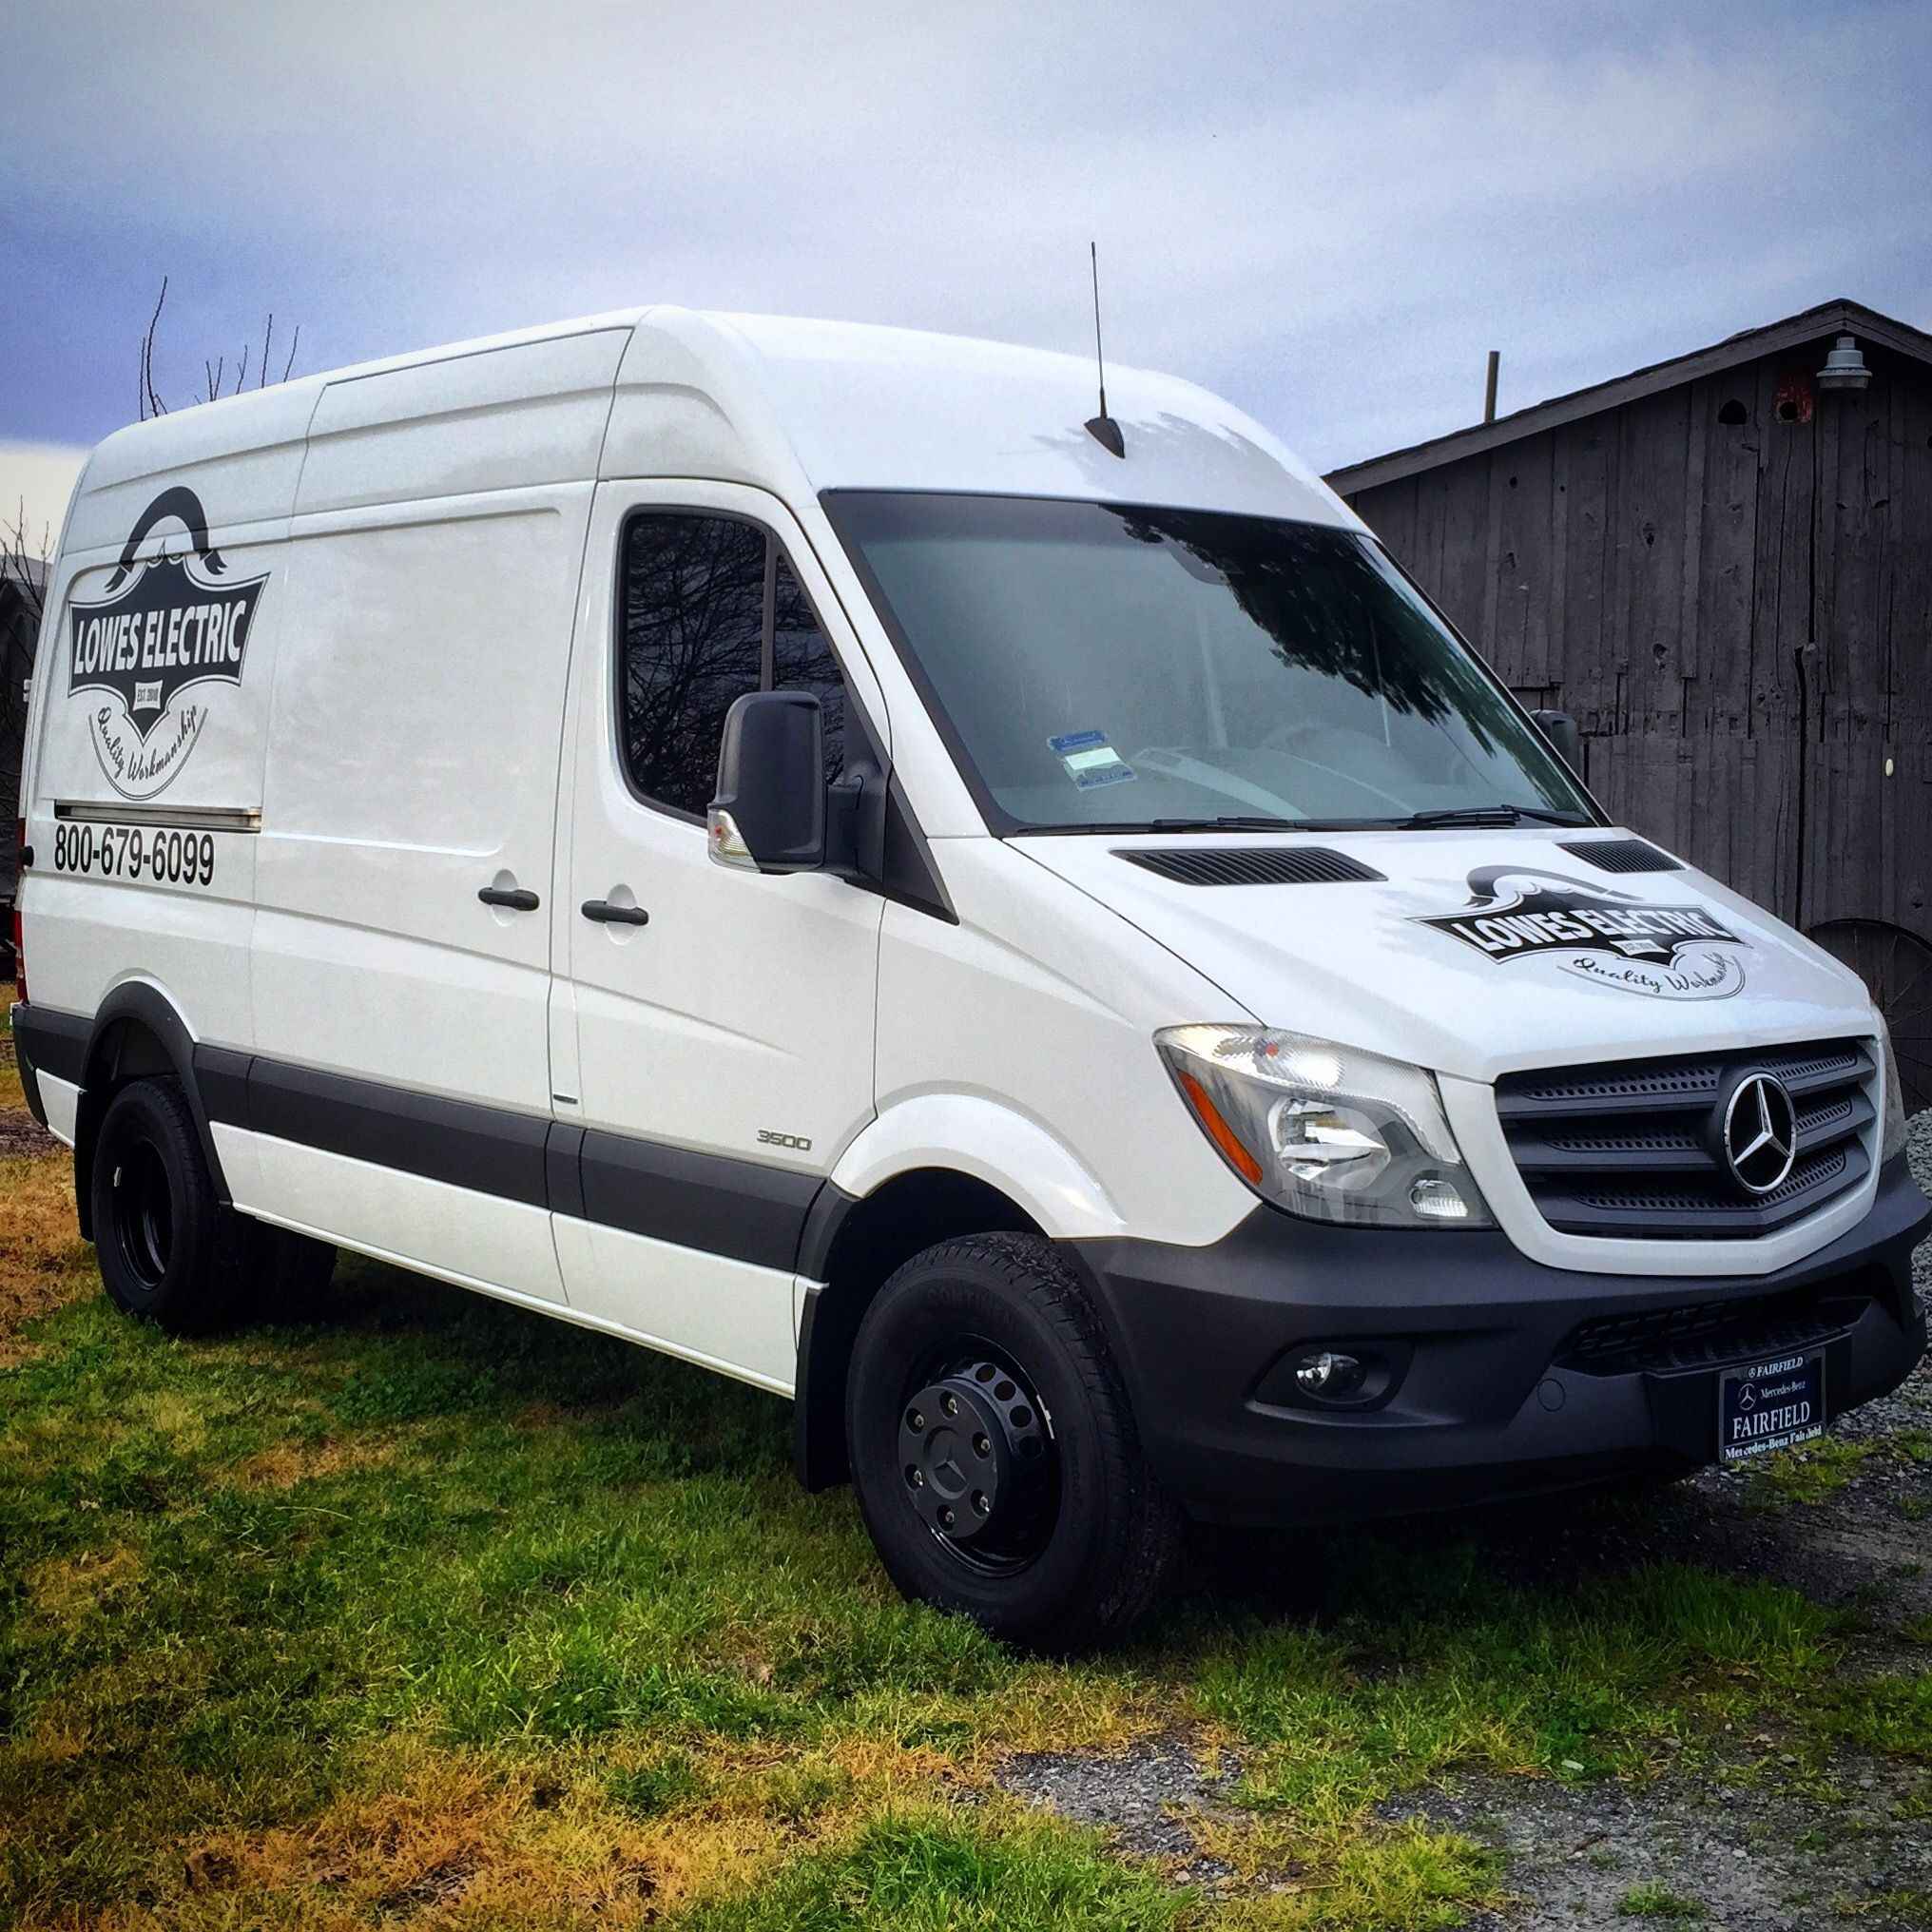 Mercedes Sprinter Custom Decals for Lowes Electric